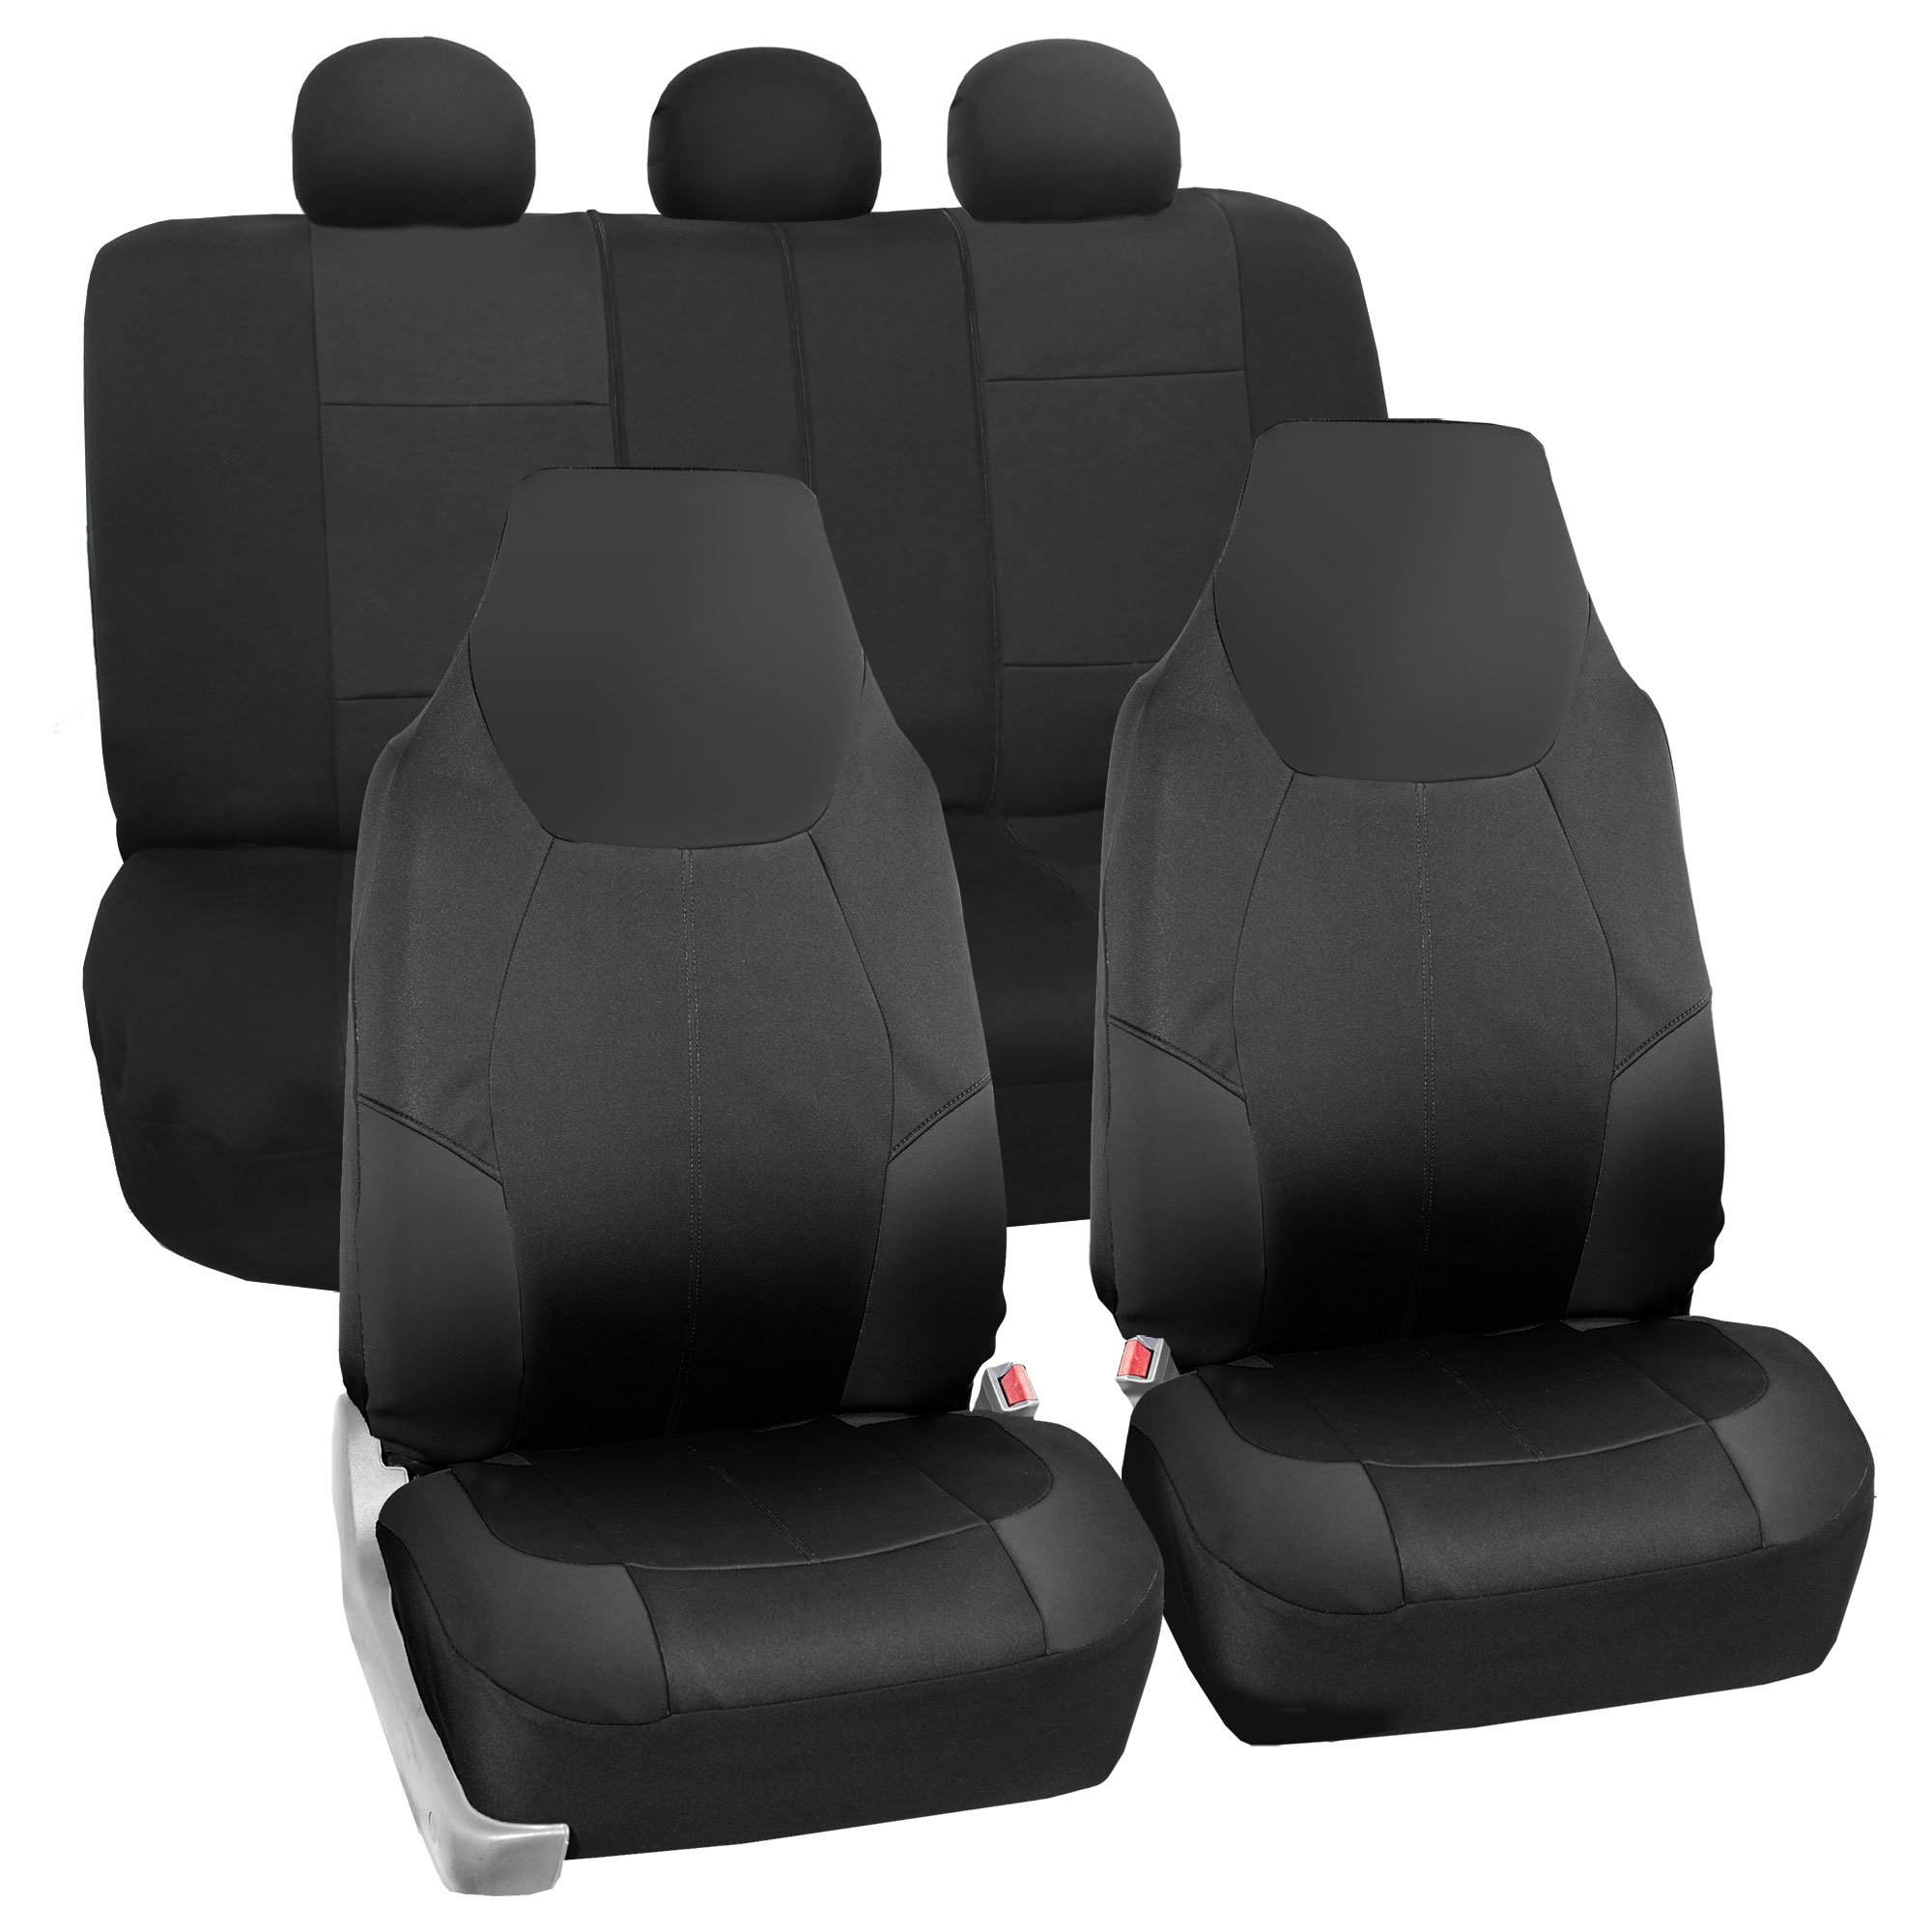 FH GROUP FB116115 Neo-Modern Neoprene Seat Covers, Airbag & Split Ready, Solid Black Color-Fit Most Car, Truck, Suv, or Van